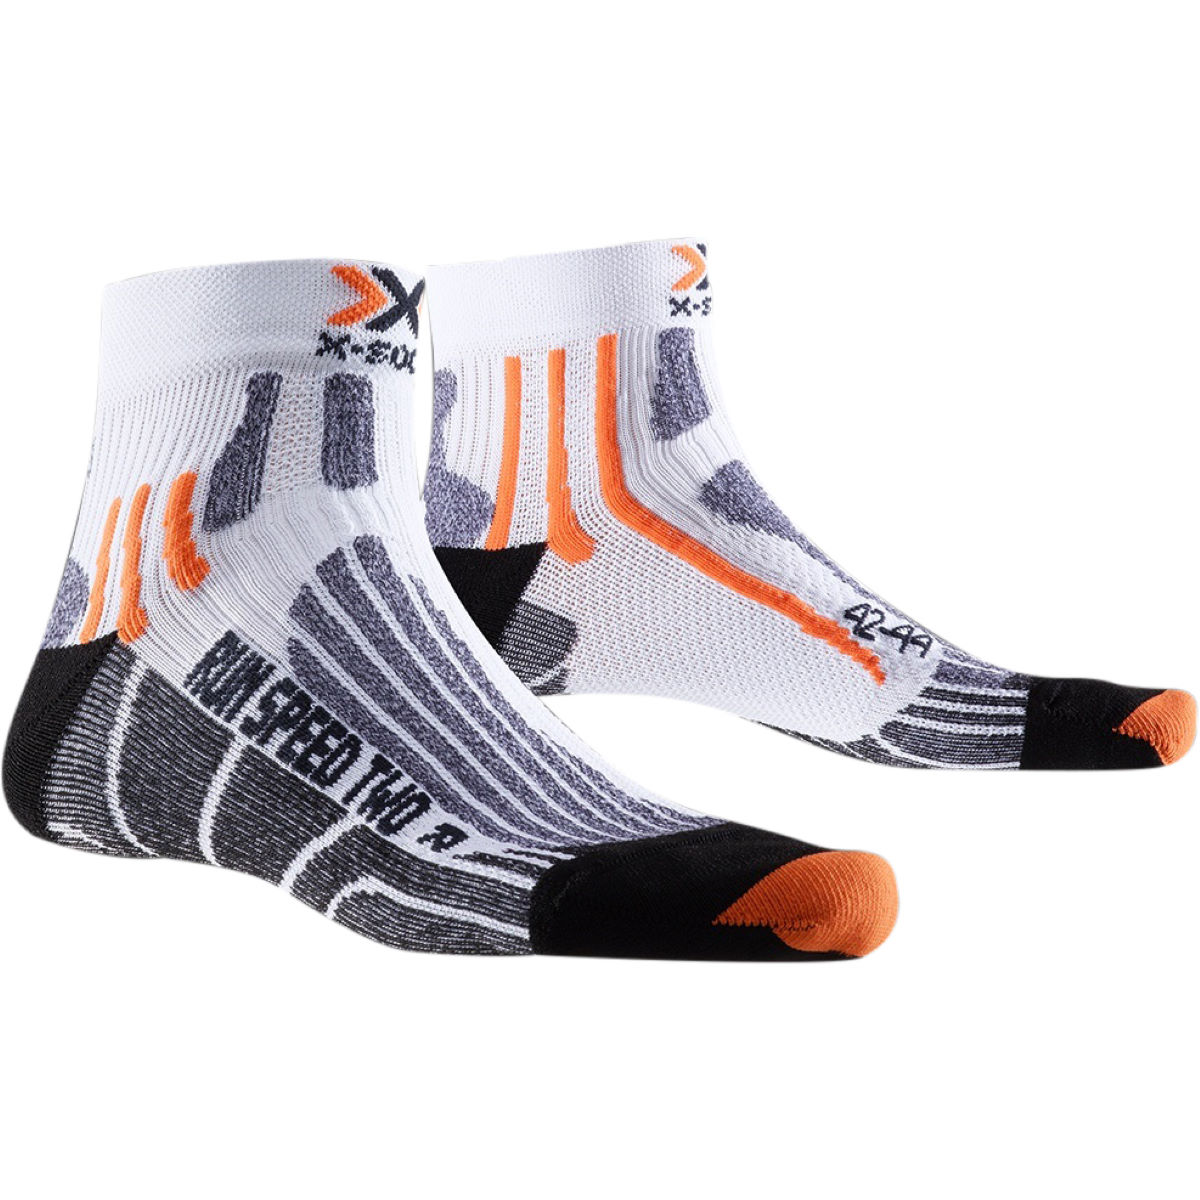 Chaussettes X-Socks Run Speed Two - 3-5.5 UK Blanc/Noir Chaussettes de running